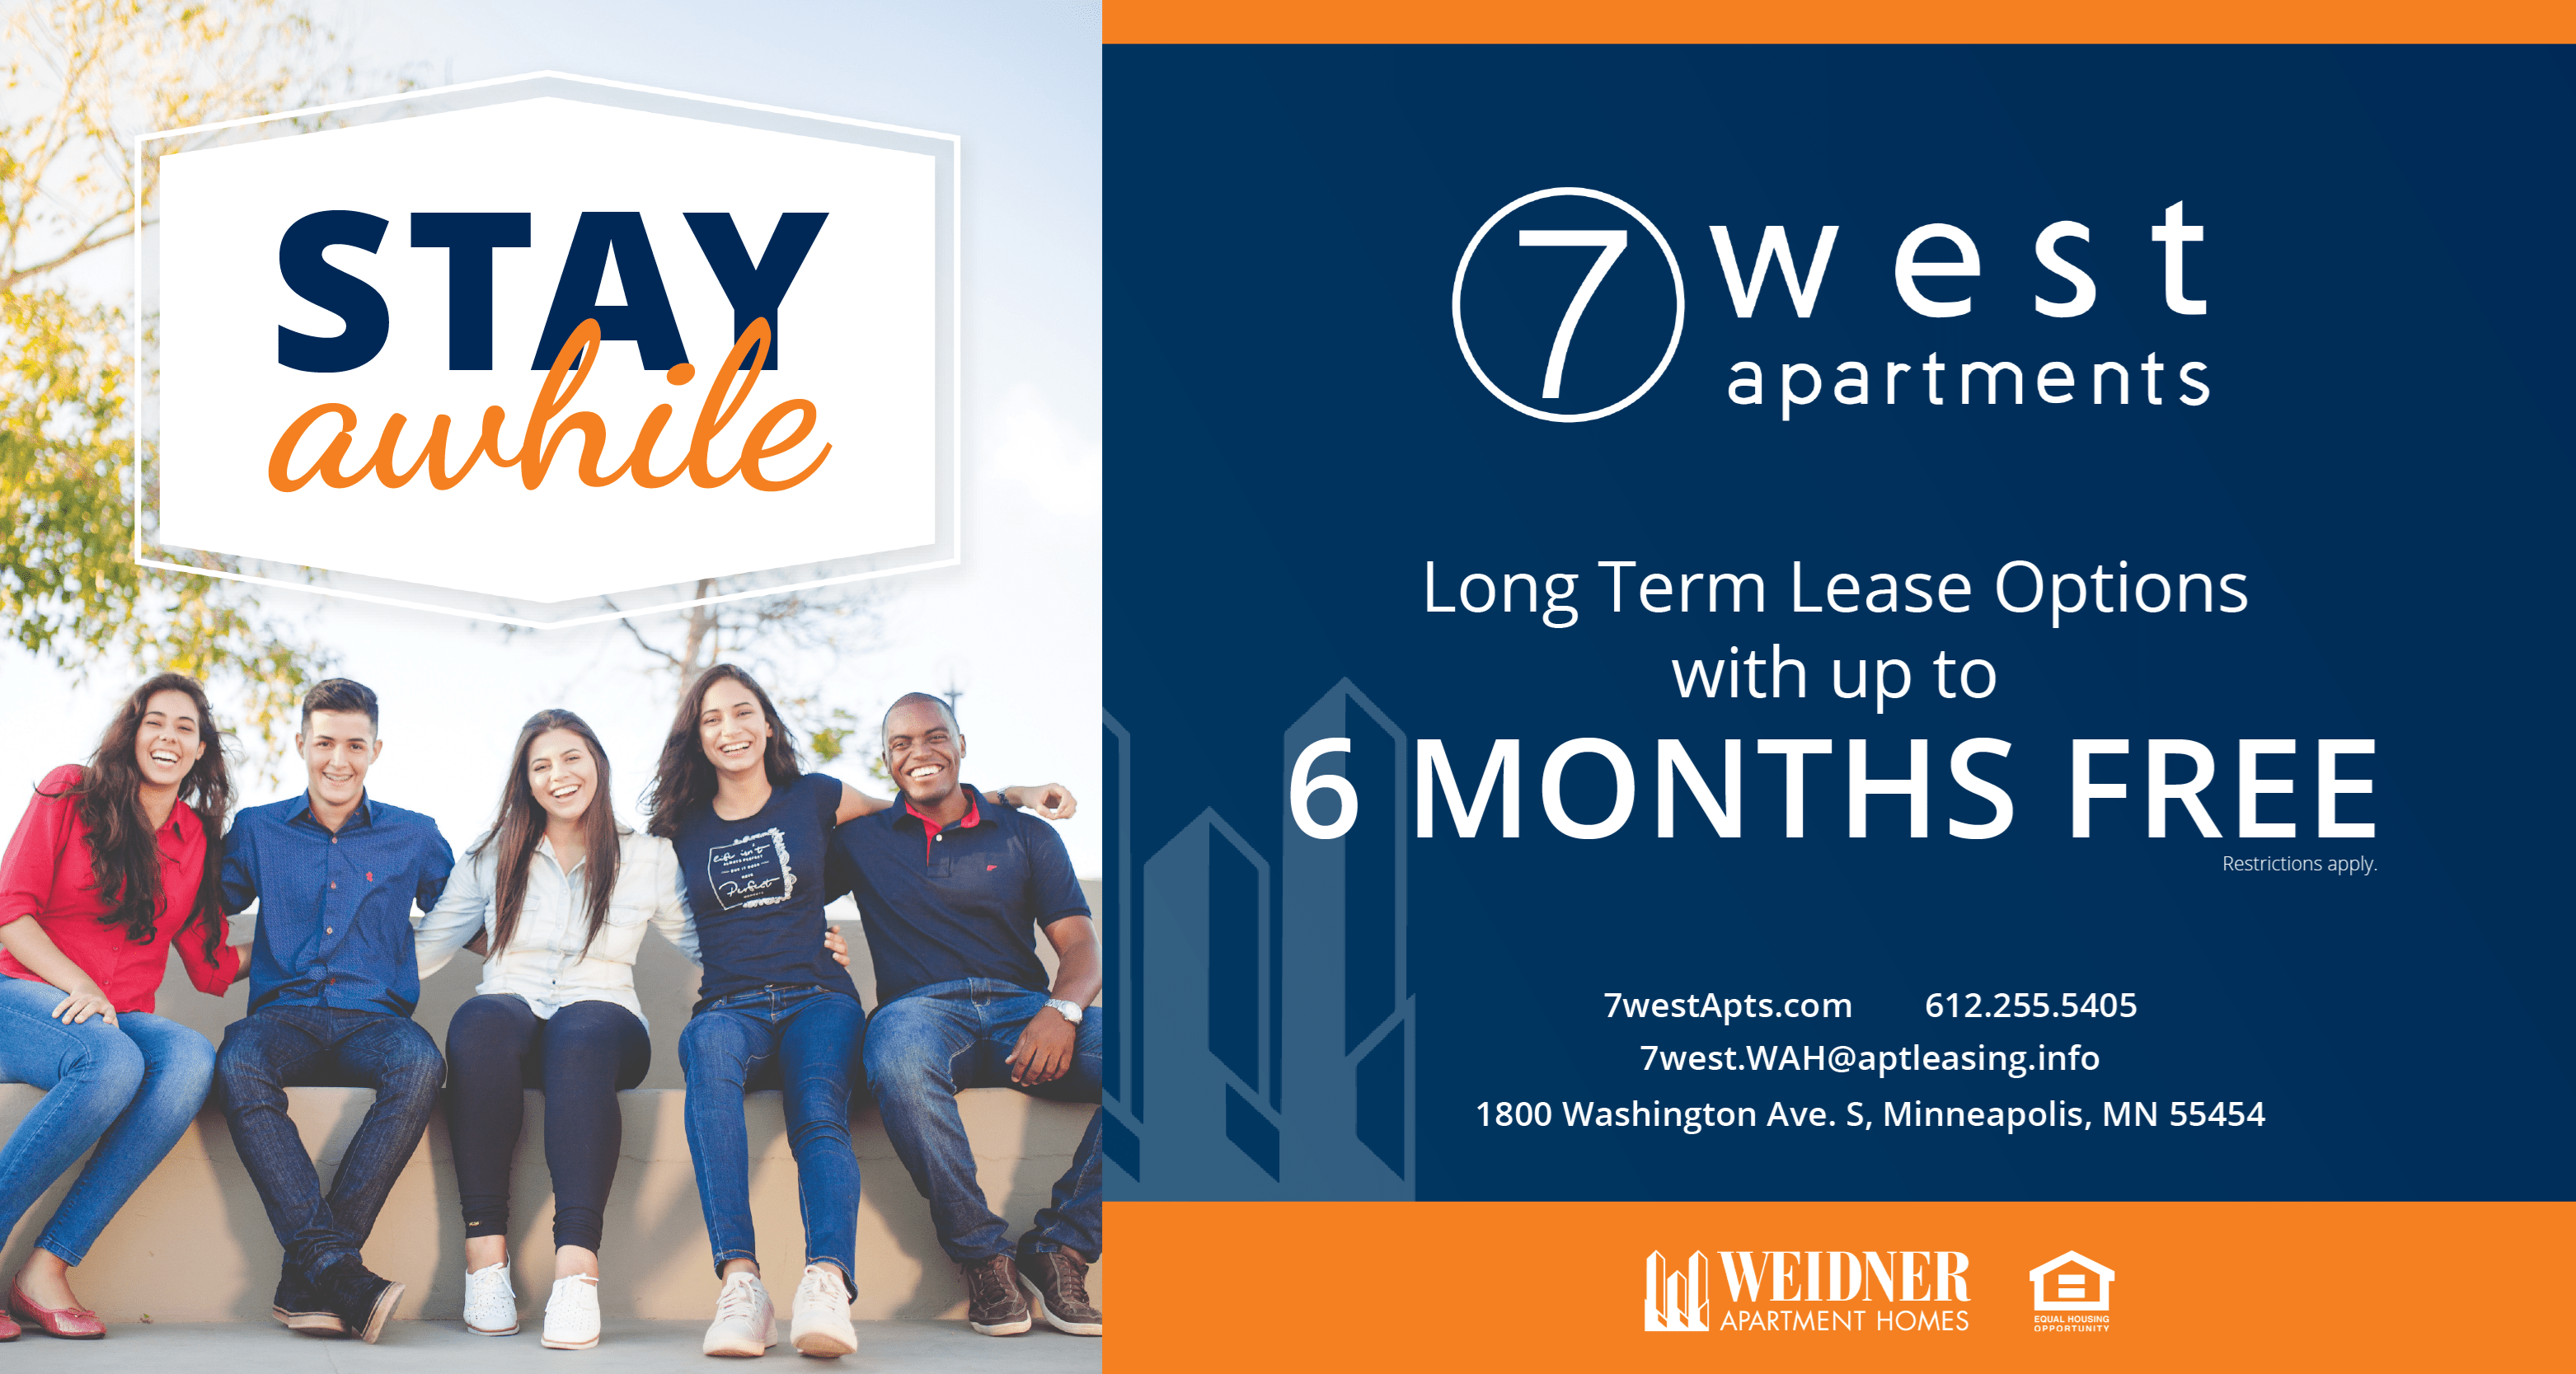 Special Savings Long Term Lease Up to 6 Months Free